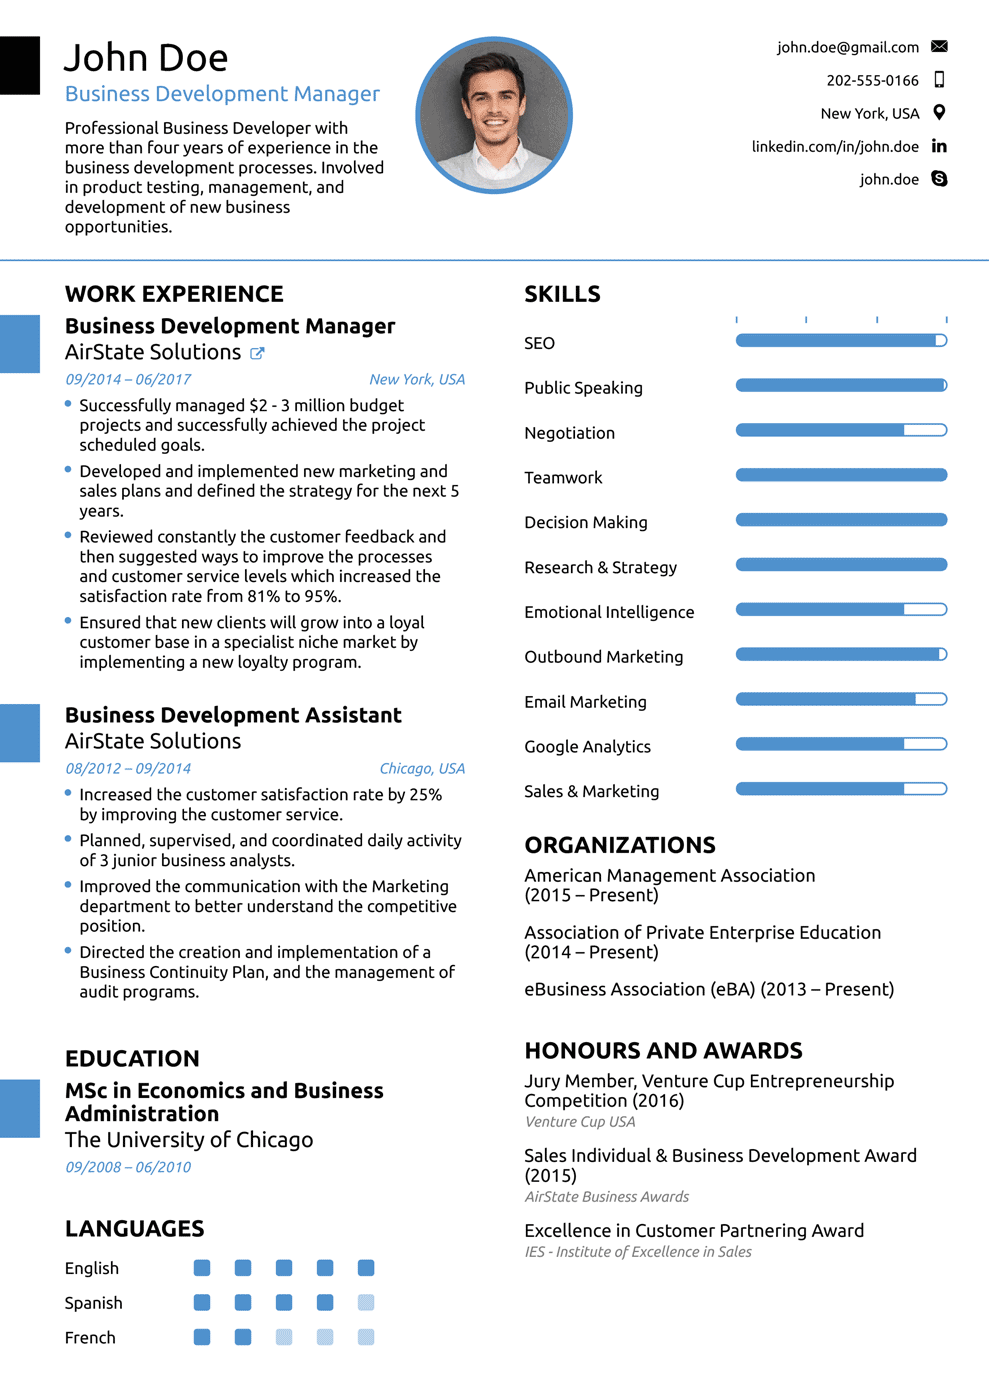 8+ Best Online Resume Templates of 2019 [Download & Customize]